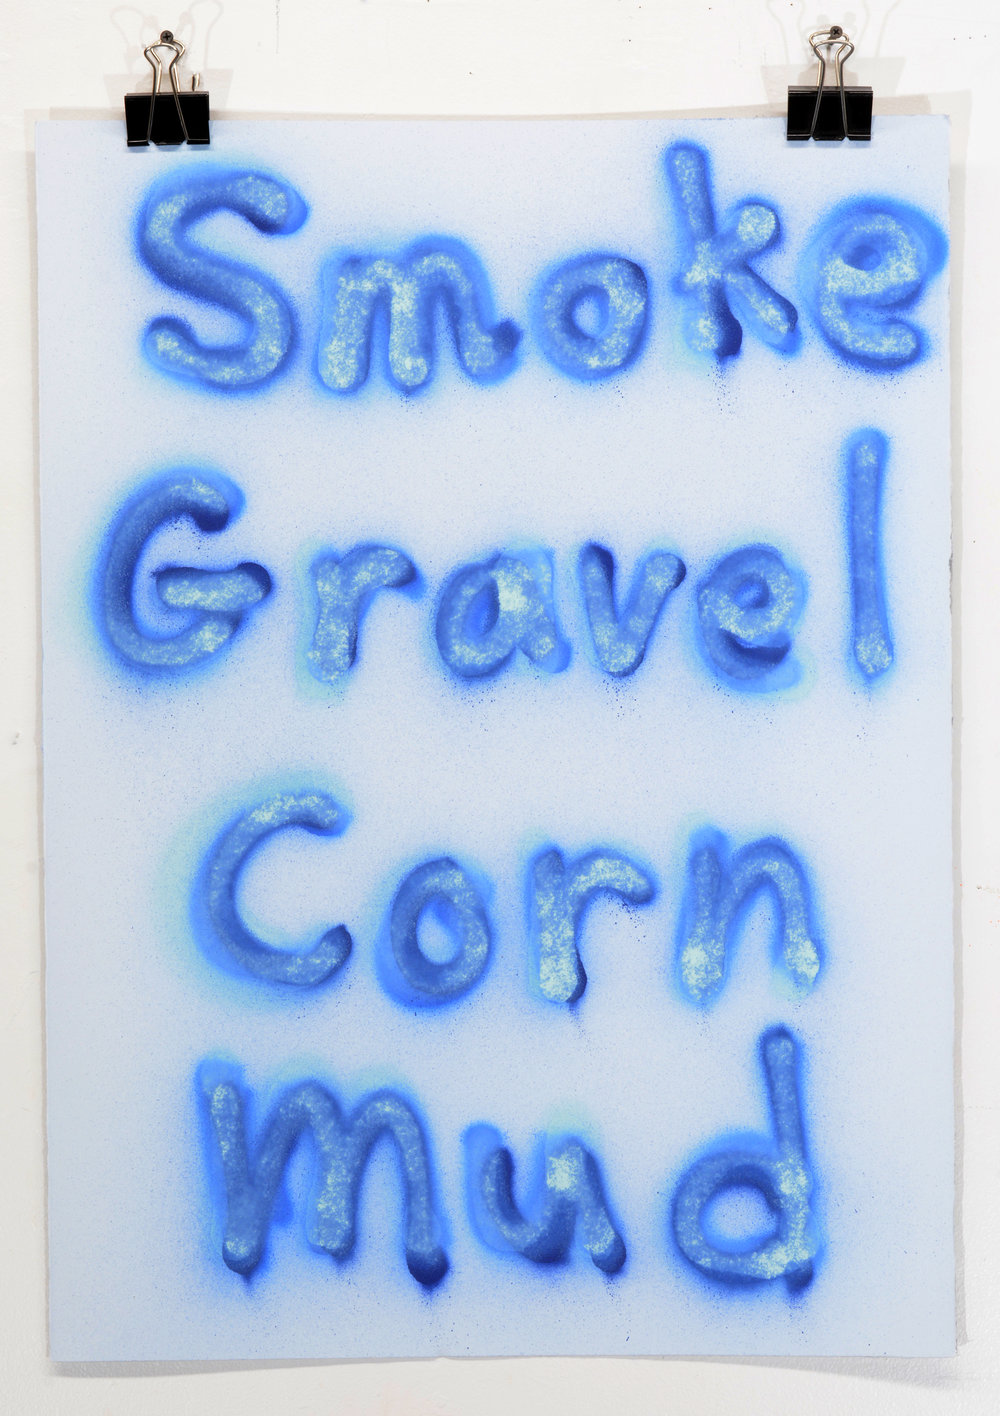 Smoke Gravel Corn Mud